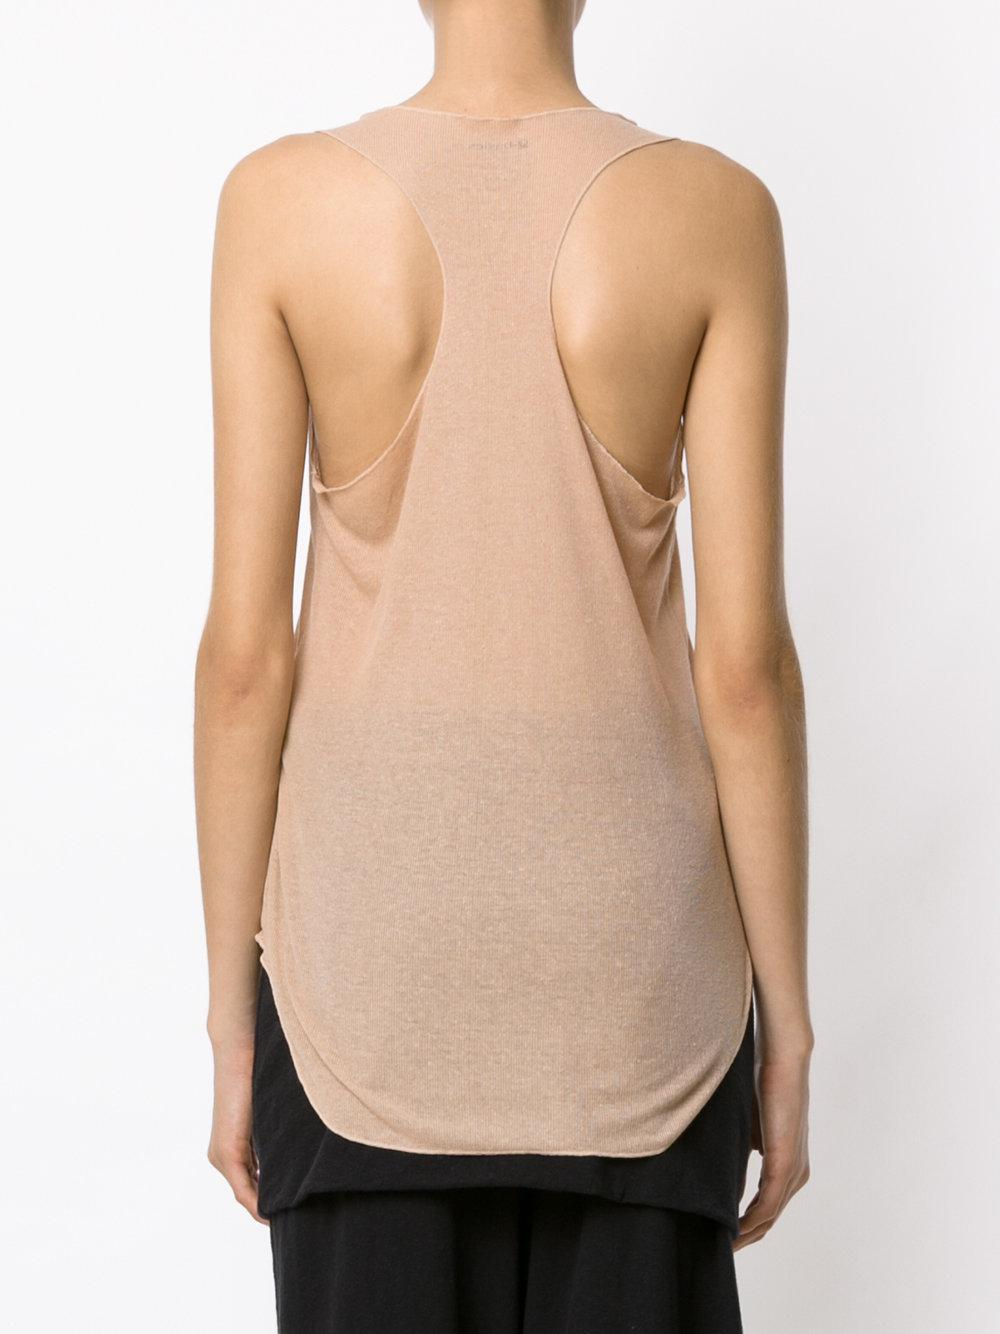 Popular For Sale Thin Rib dress - Nude & Neutrals Osklen Cheap Clearance Free Shipping 100% Authentic Sale Fake K1De4g